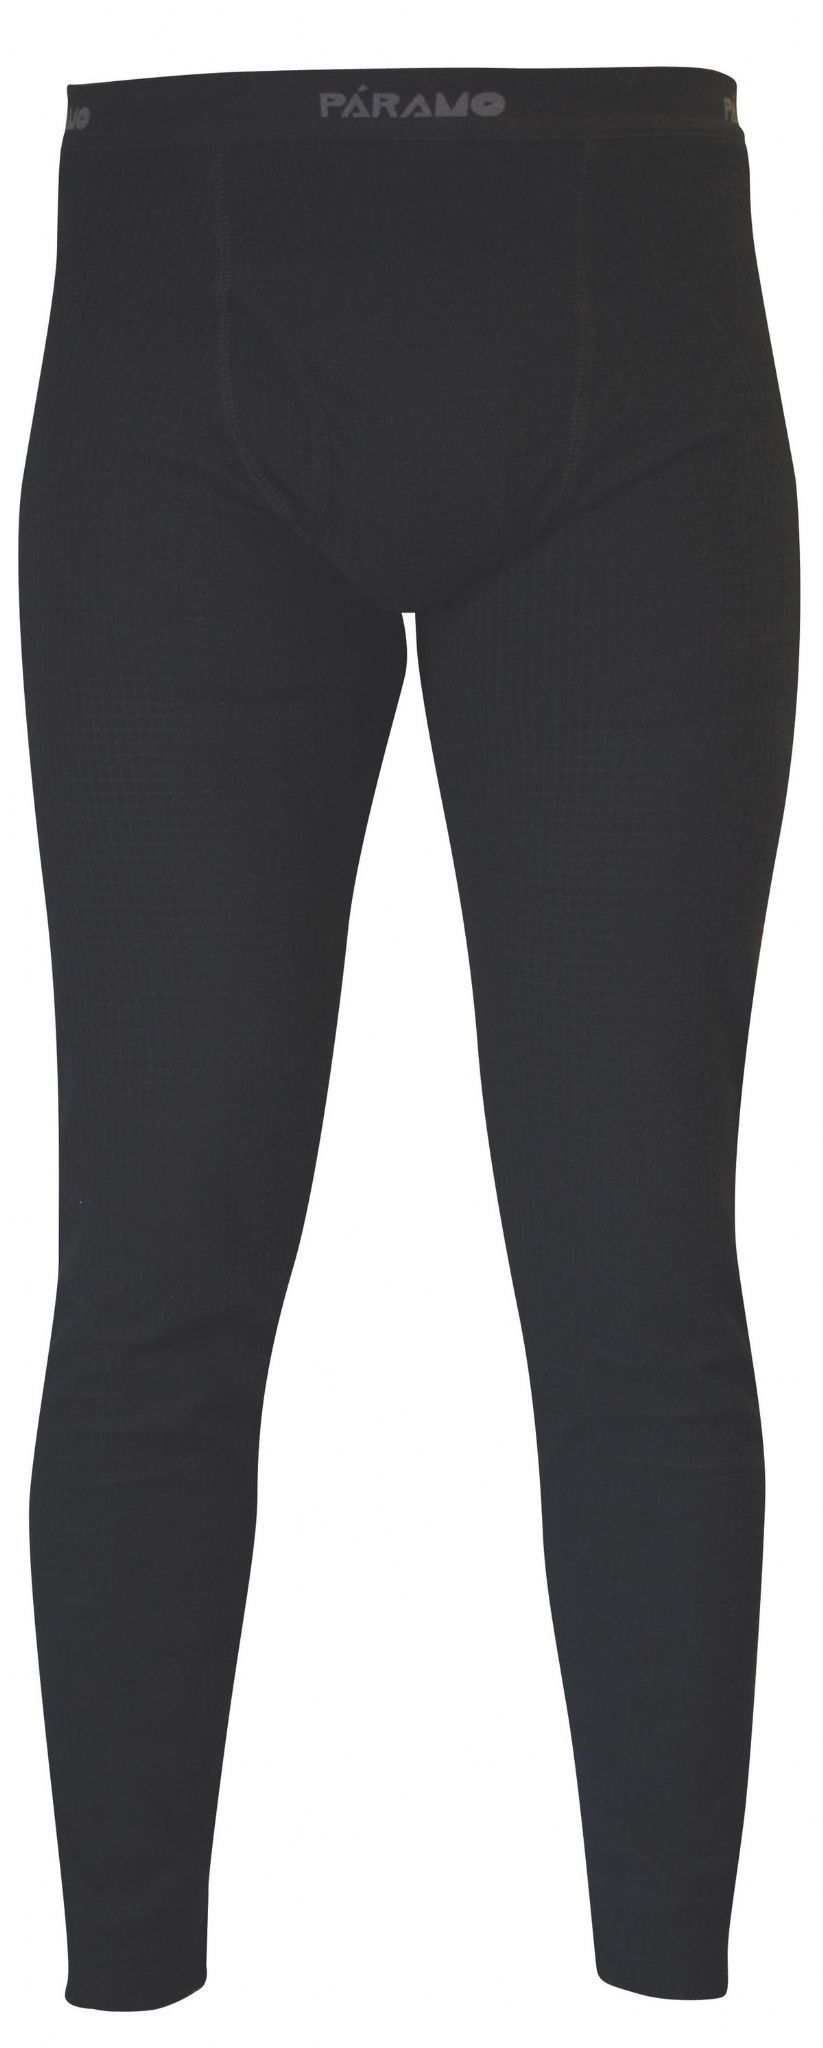 Paramo Men's Grid Long Johns Baselayer